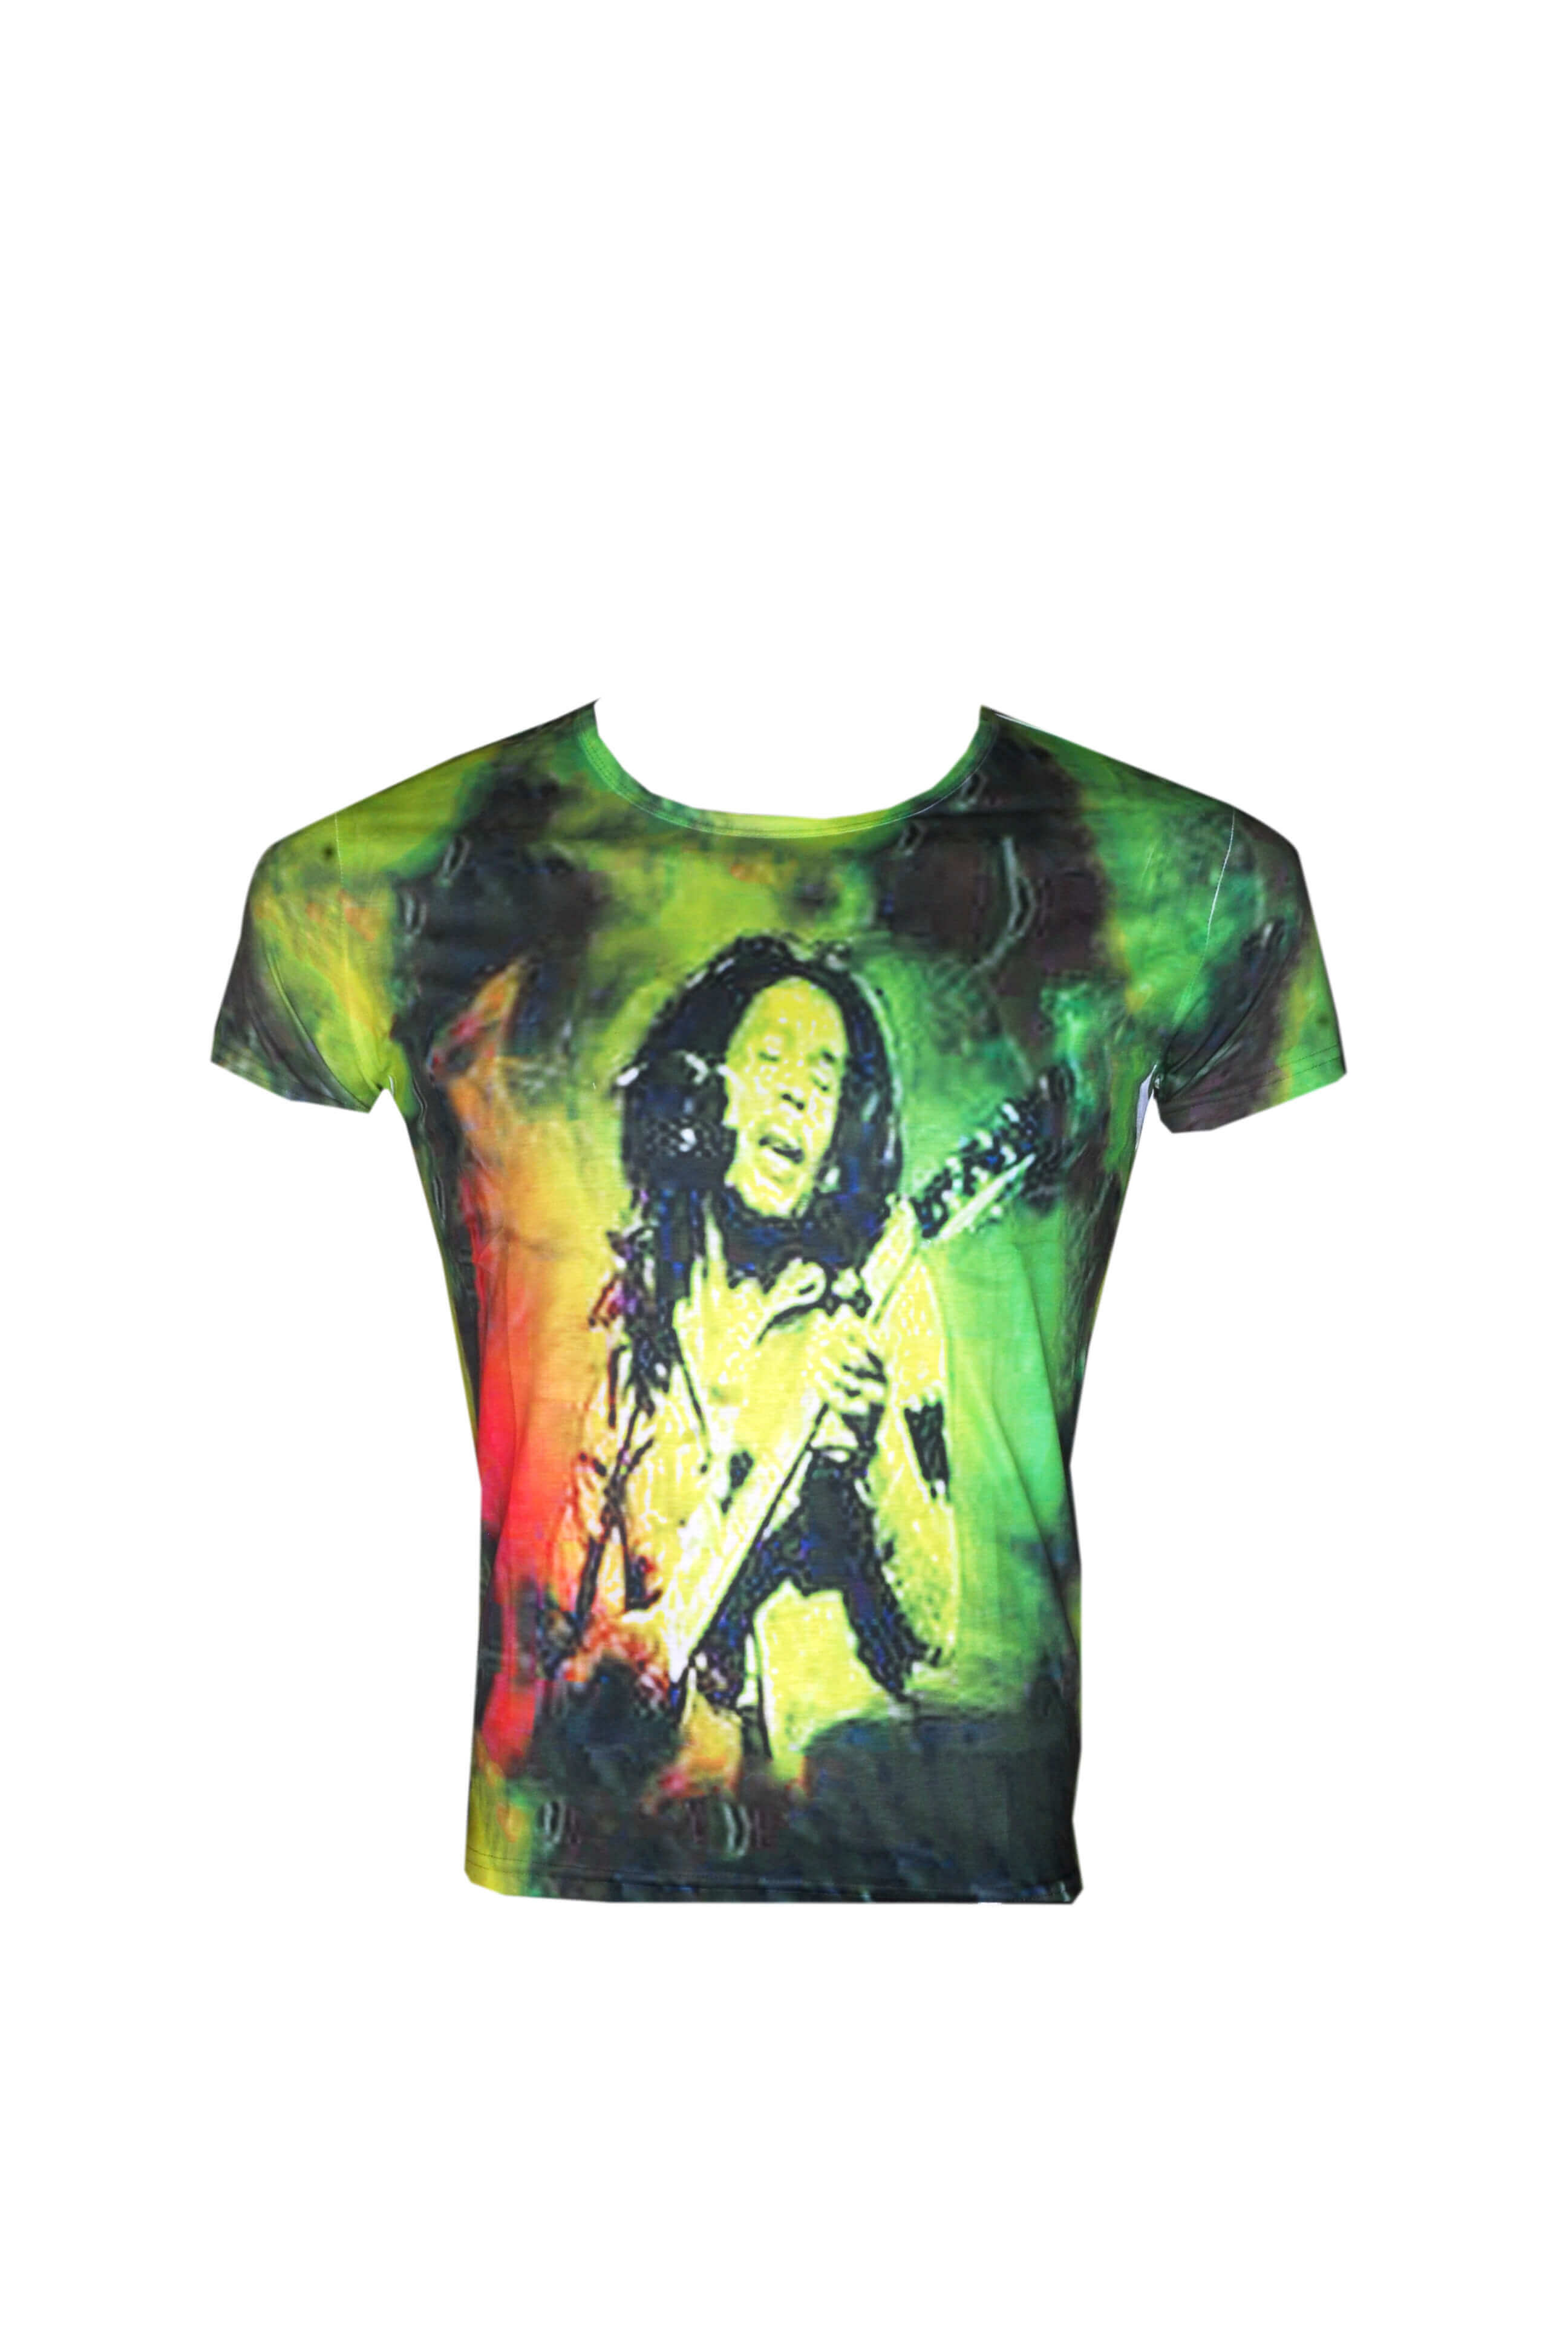 Guitarist-Marley-Graphic-Tee